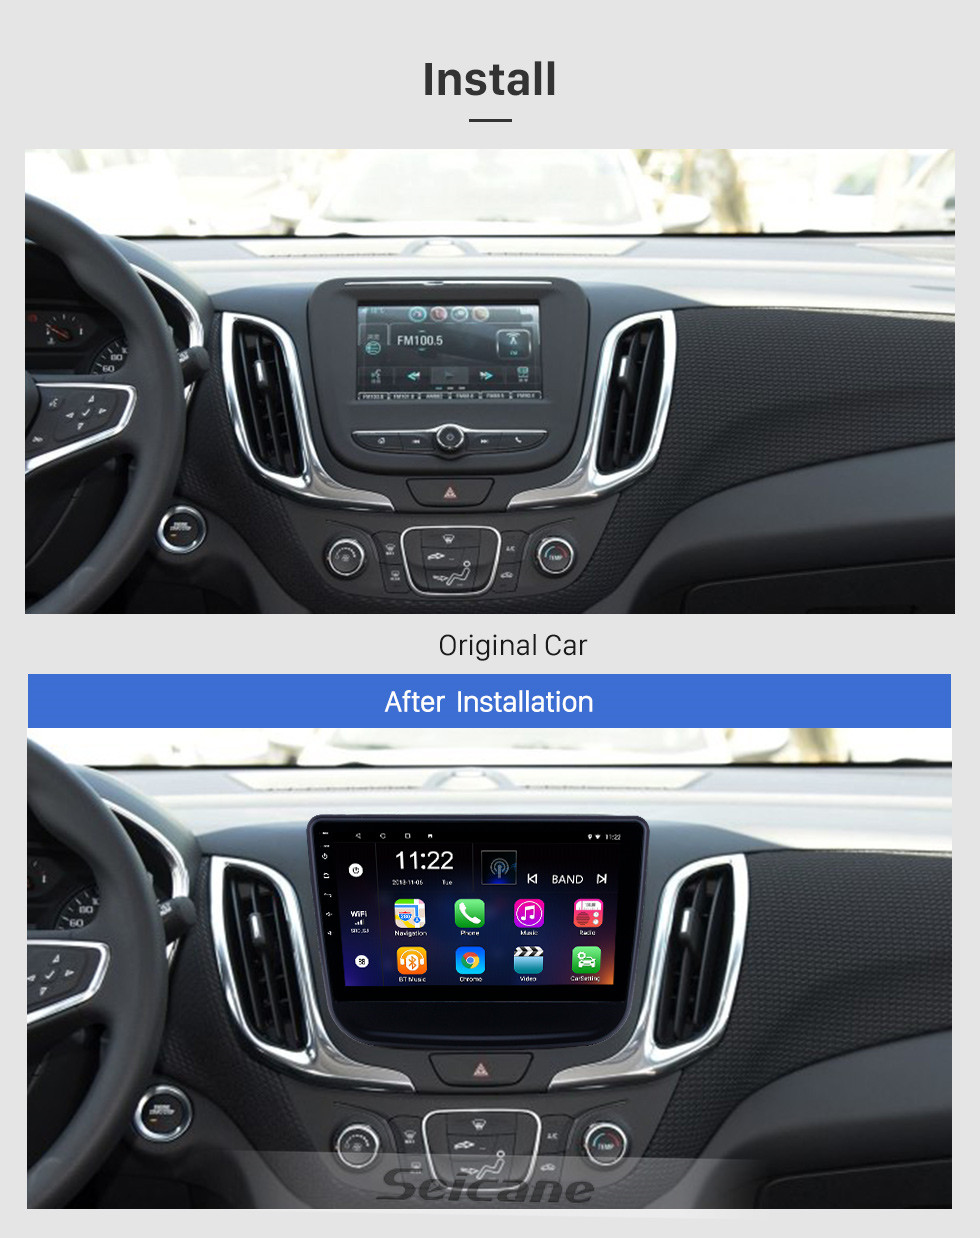 Seicane 10.1 inch Android 10.0 GPS Navigation Radio for 2016-2018 chevy Chevrolet Equinox with HD Touchscreen Bluetooth USB support Carplay TPMS